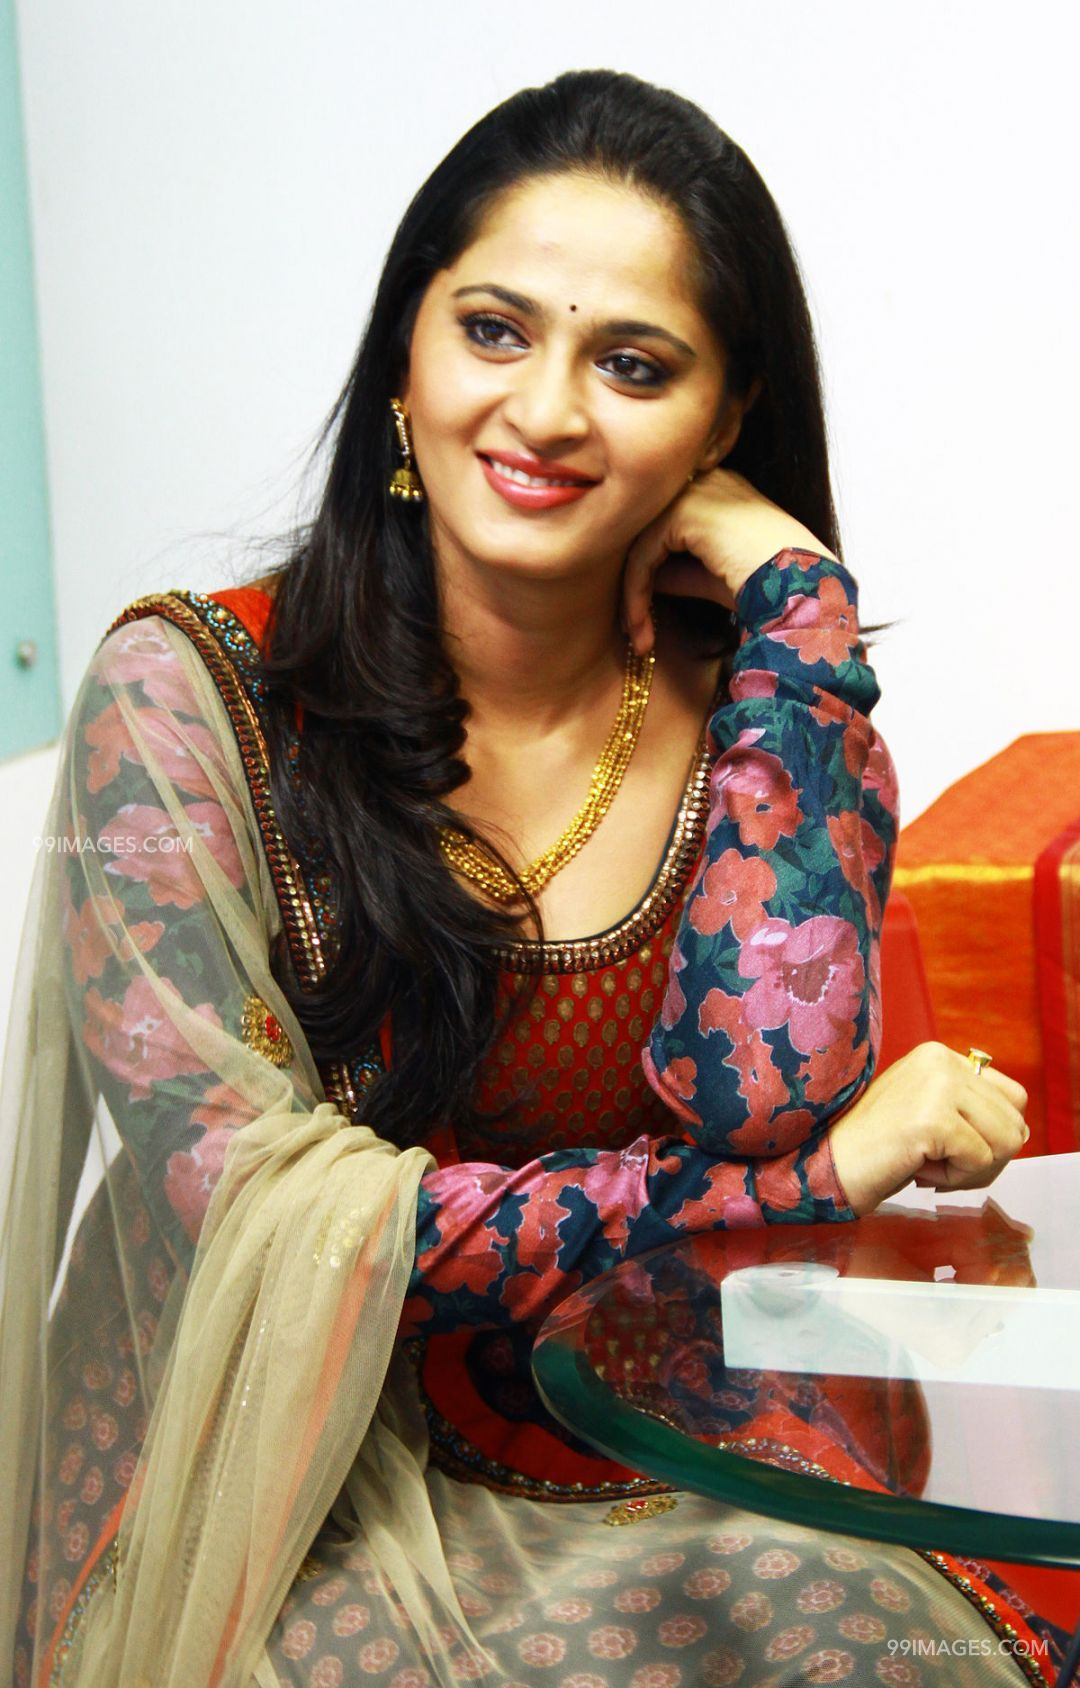 Anushka Shetty Beautiful HD Photoshoot Stills (1080p) (3704) - Anushka Shetty